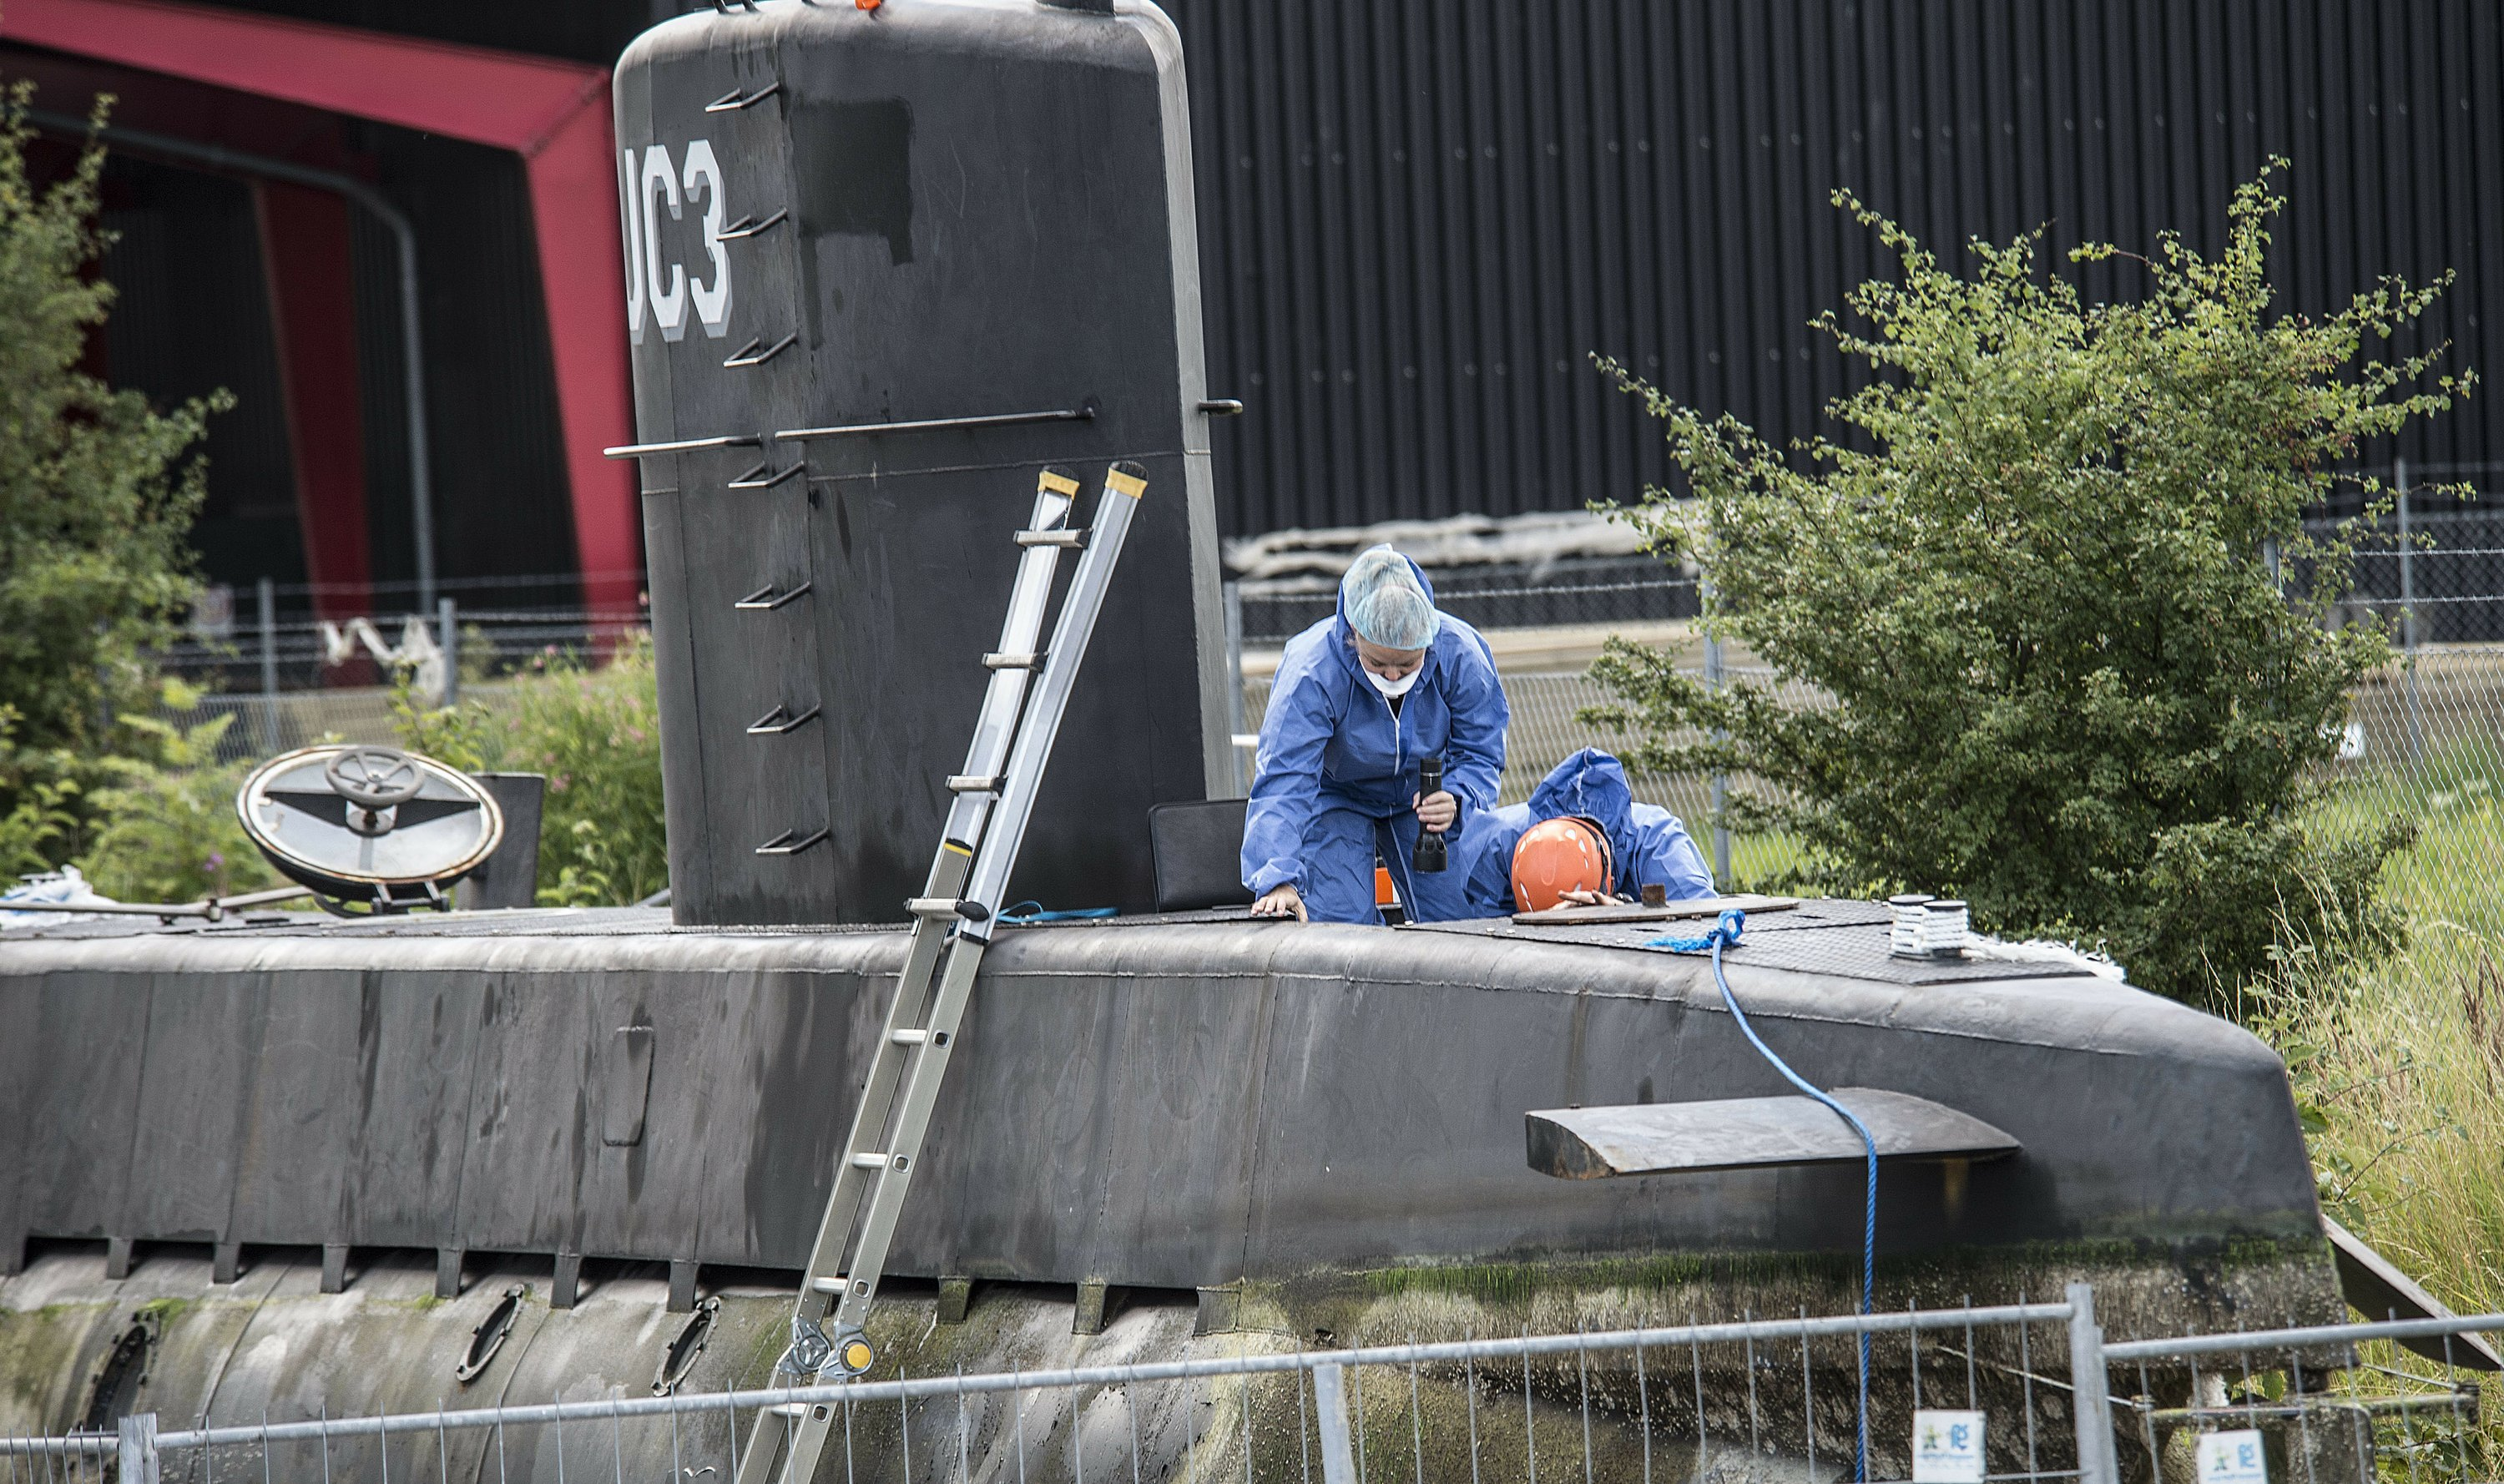 Danish police says submarine inventor won't talk anymore